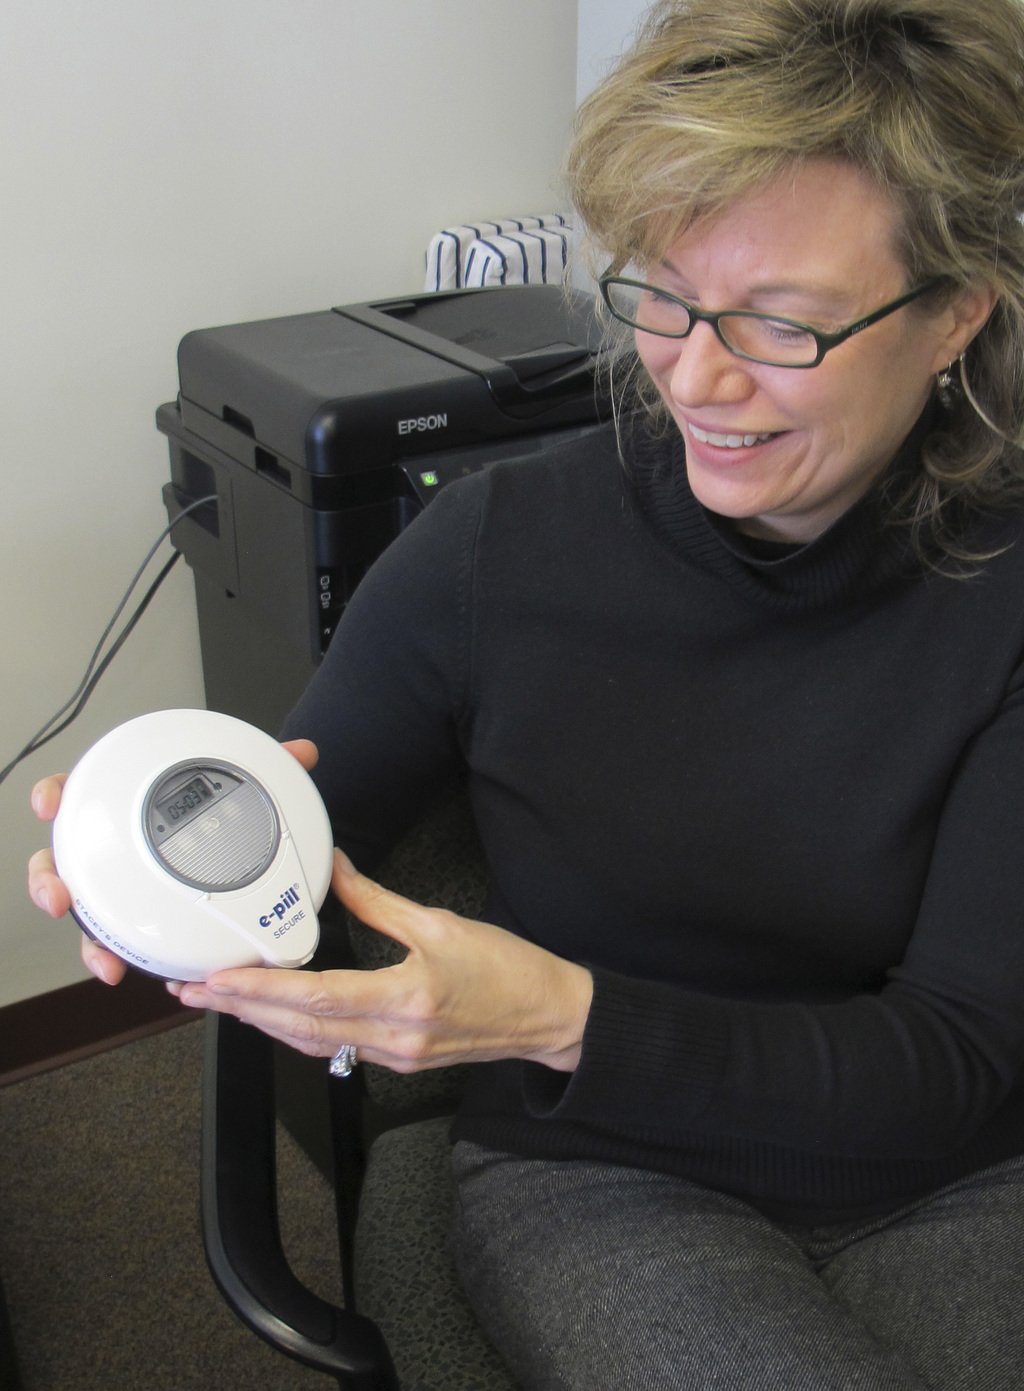 University of Vermont Psychologist Stacey Sigmon holds a tamper-proof electronic pill dispenser in her office in Burlington, Vt., Wedne...